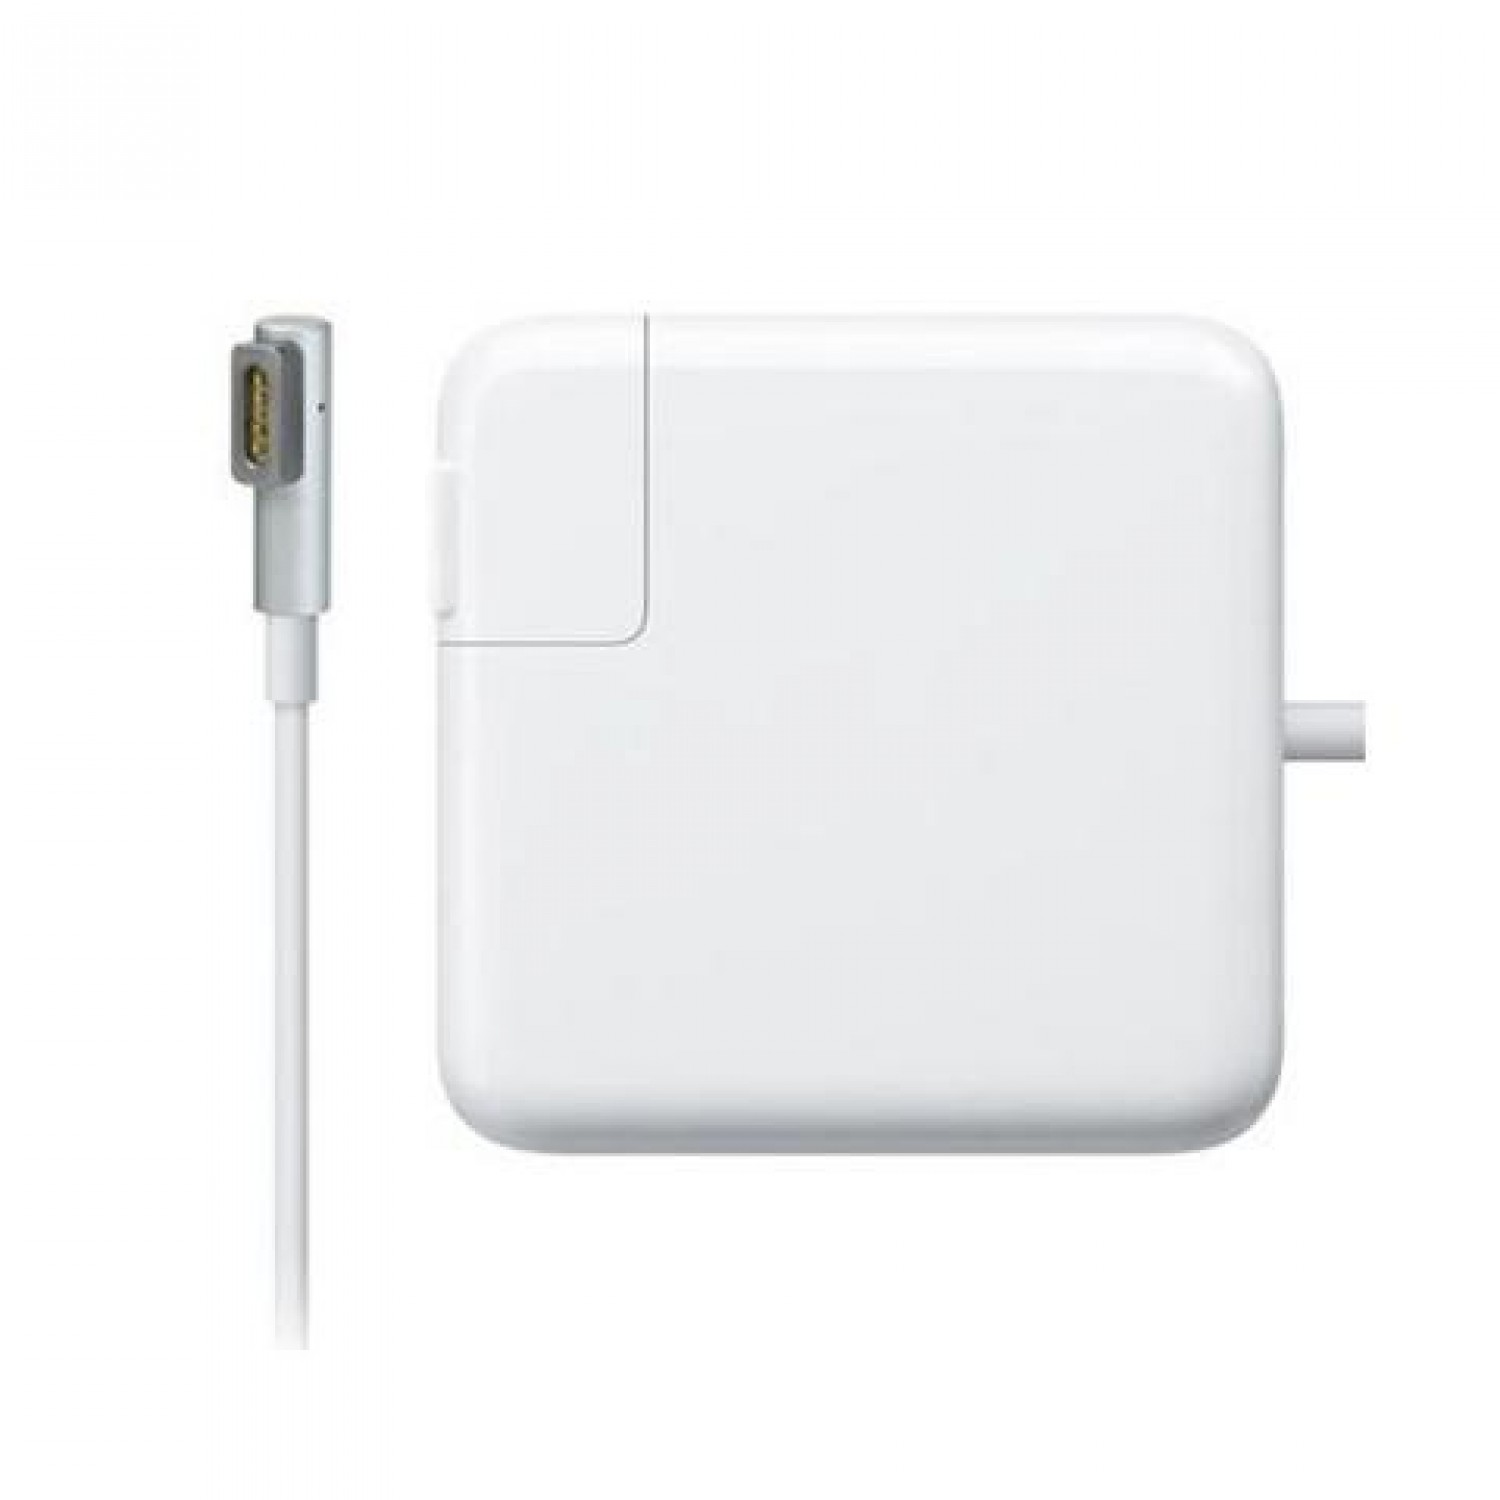 MagSafe Power Charger Adapter for Apple MacBook